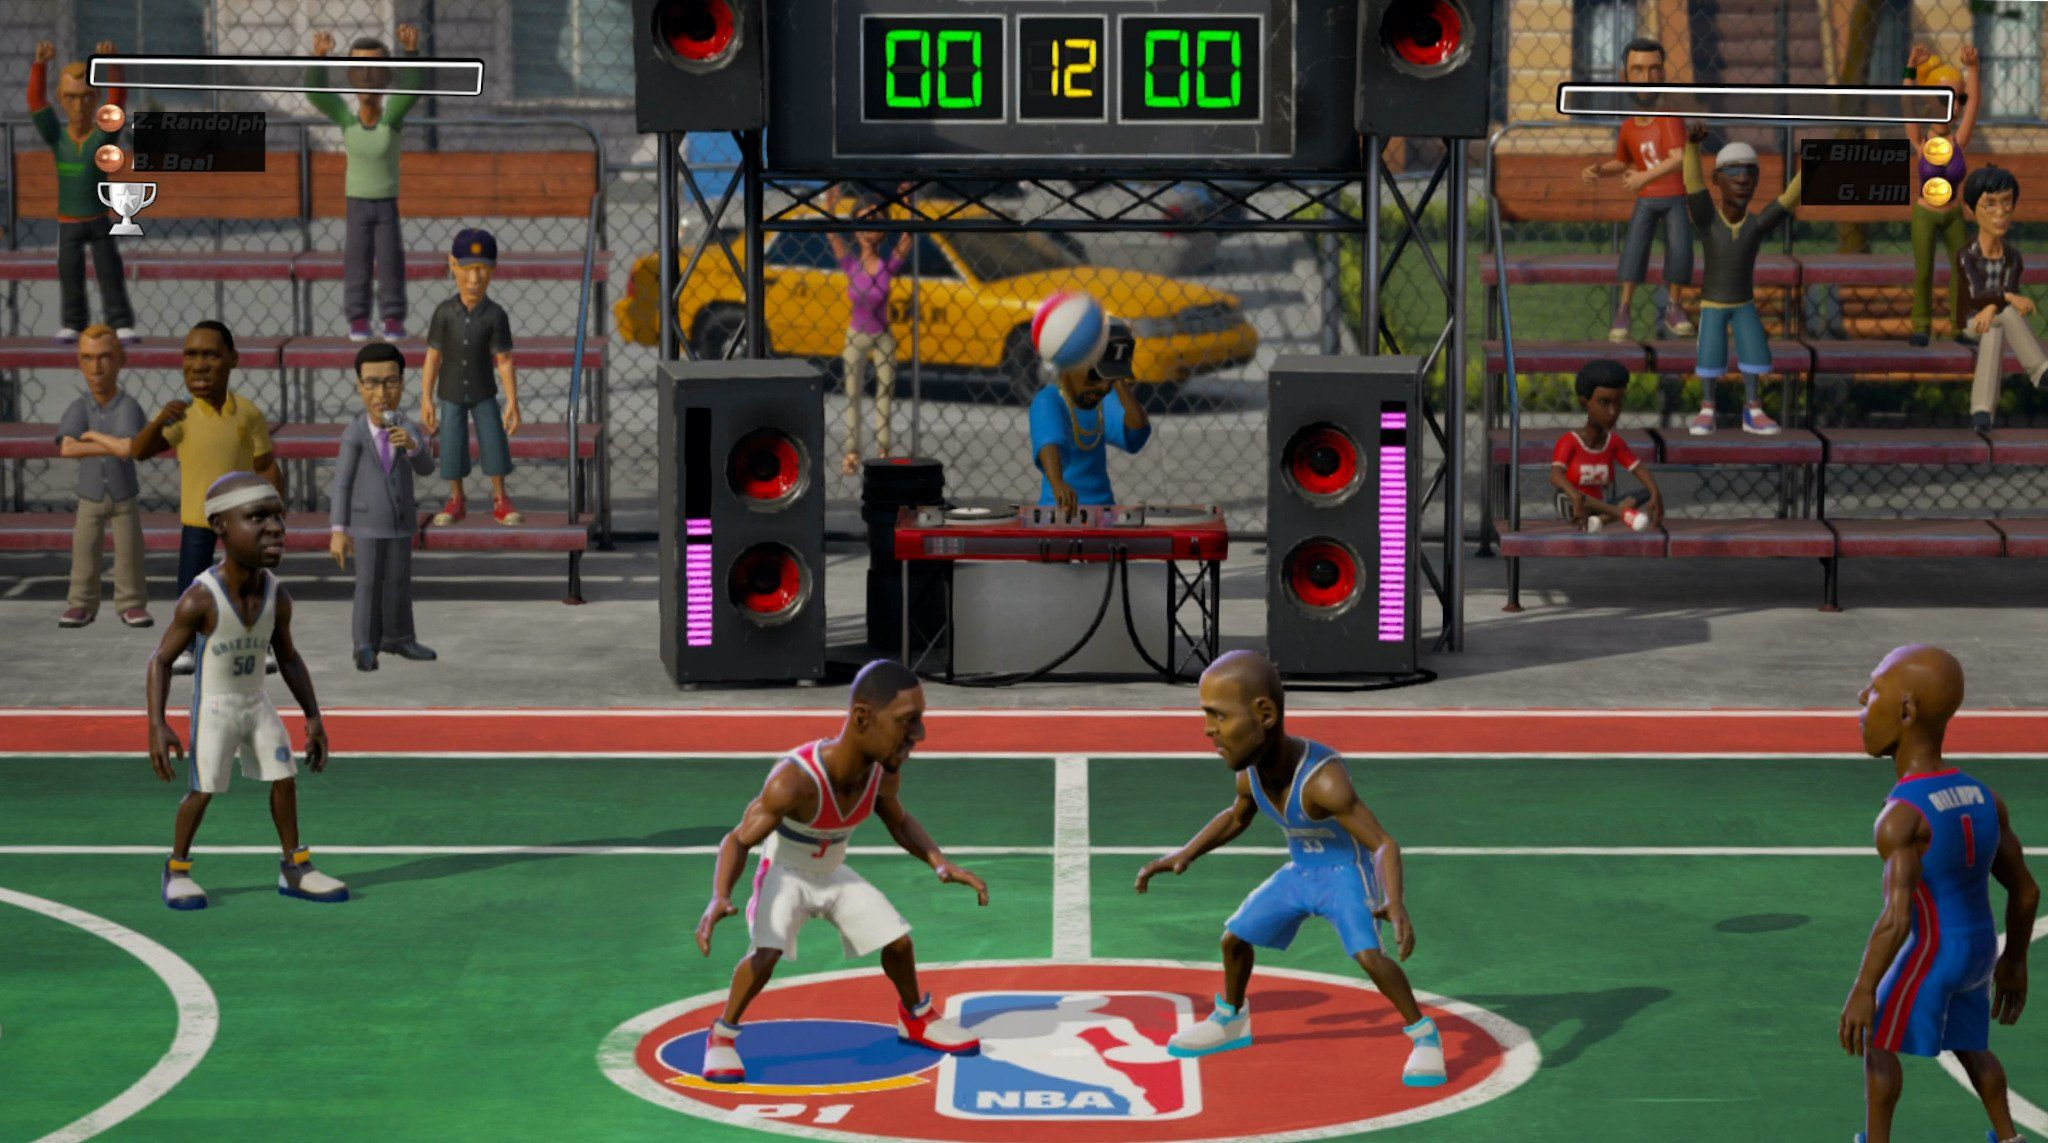 NBA Playgrounds for Xbox One review: A basketball game that fails to rival NBA Jam